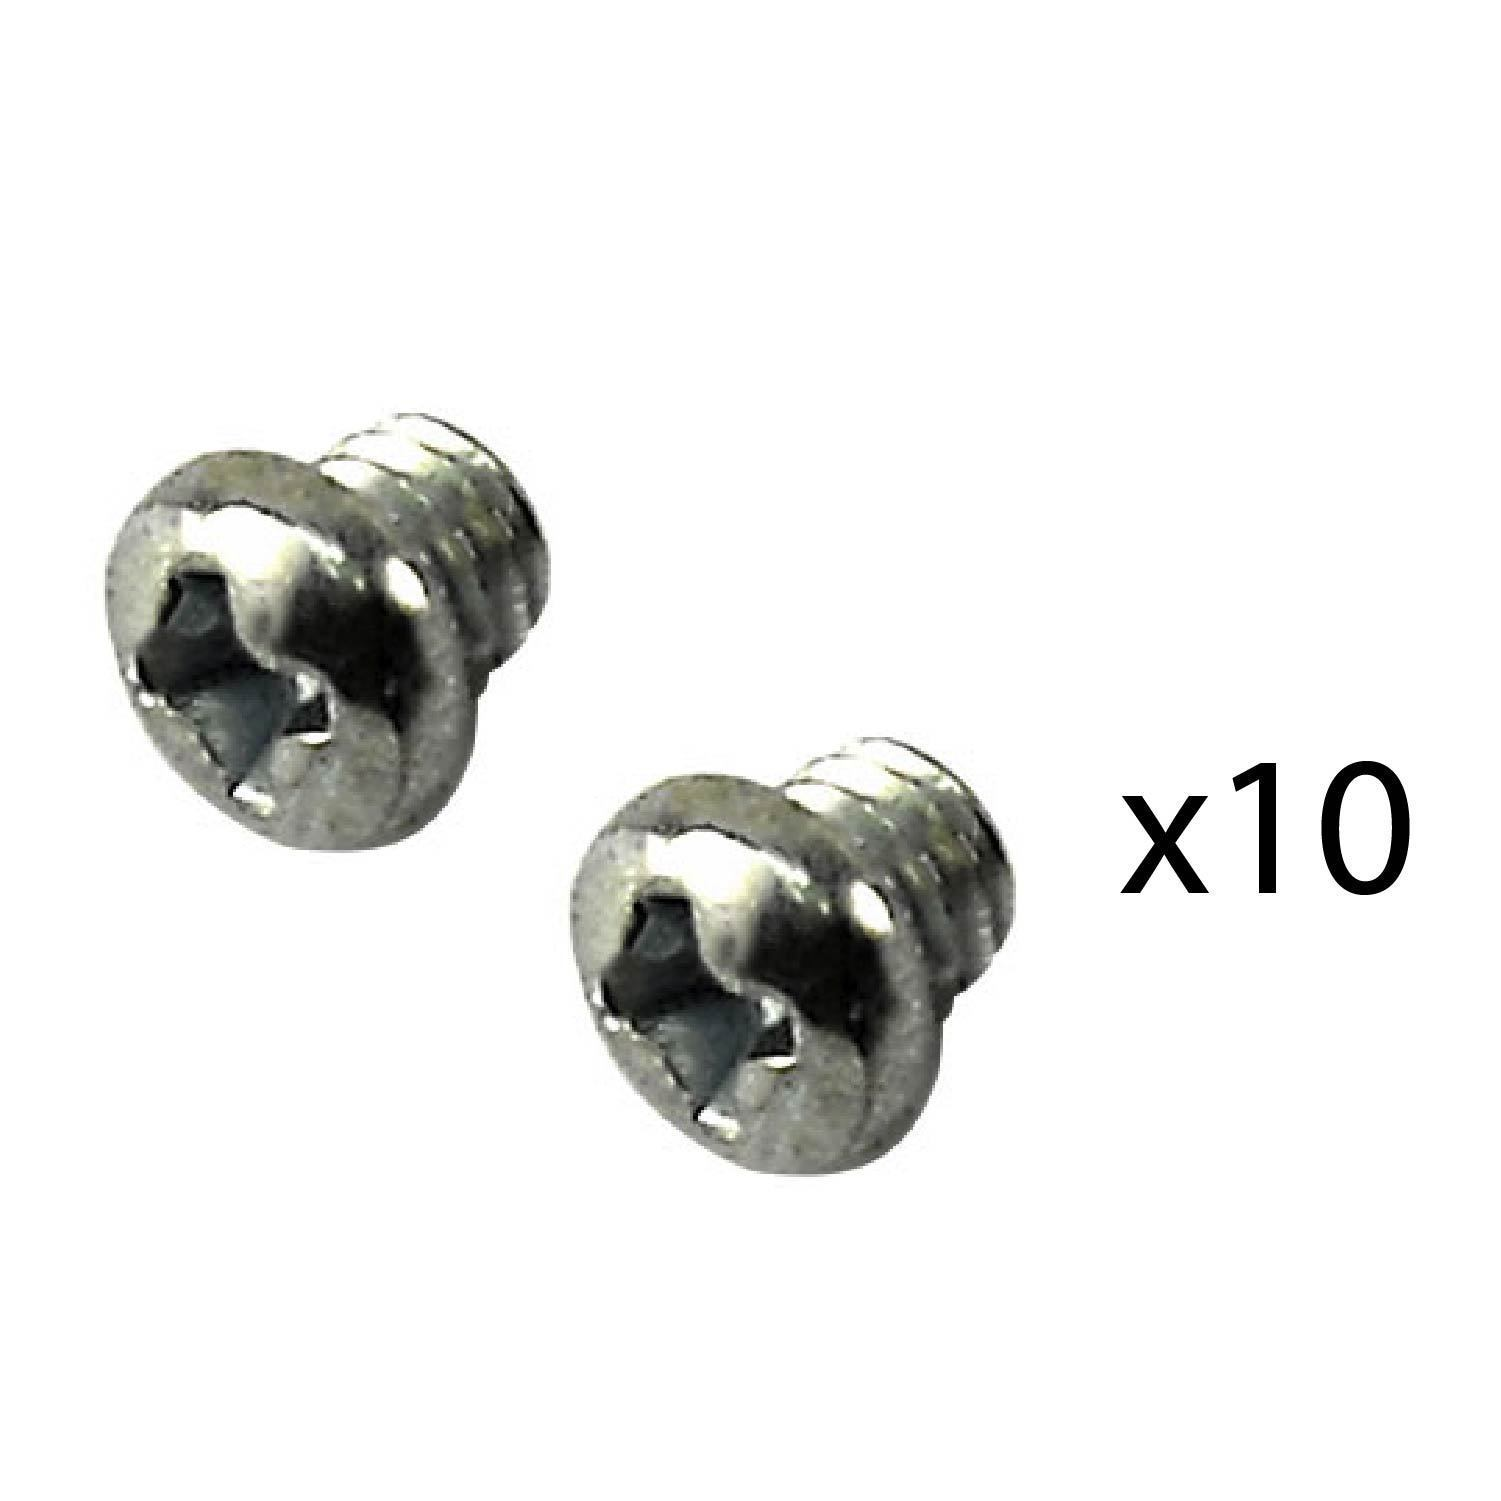 10 Pairs Lower Blade Replacement Screws for Andis Master Fade Master Phat Master - $19.99